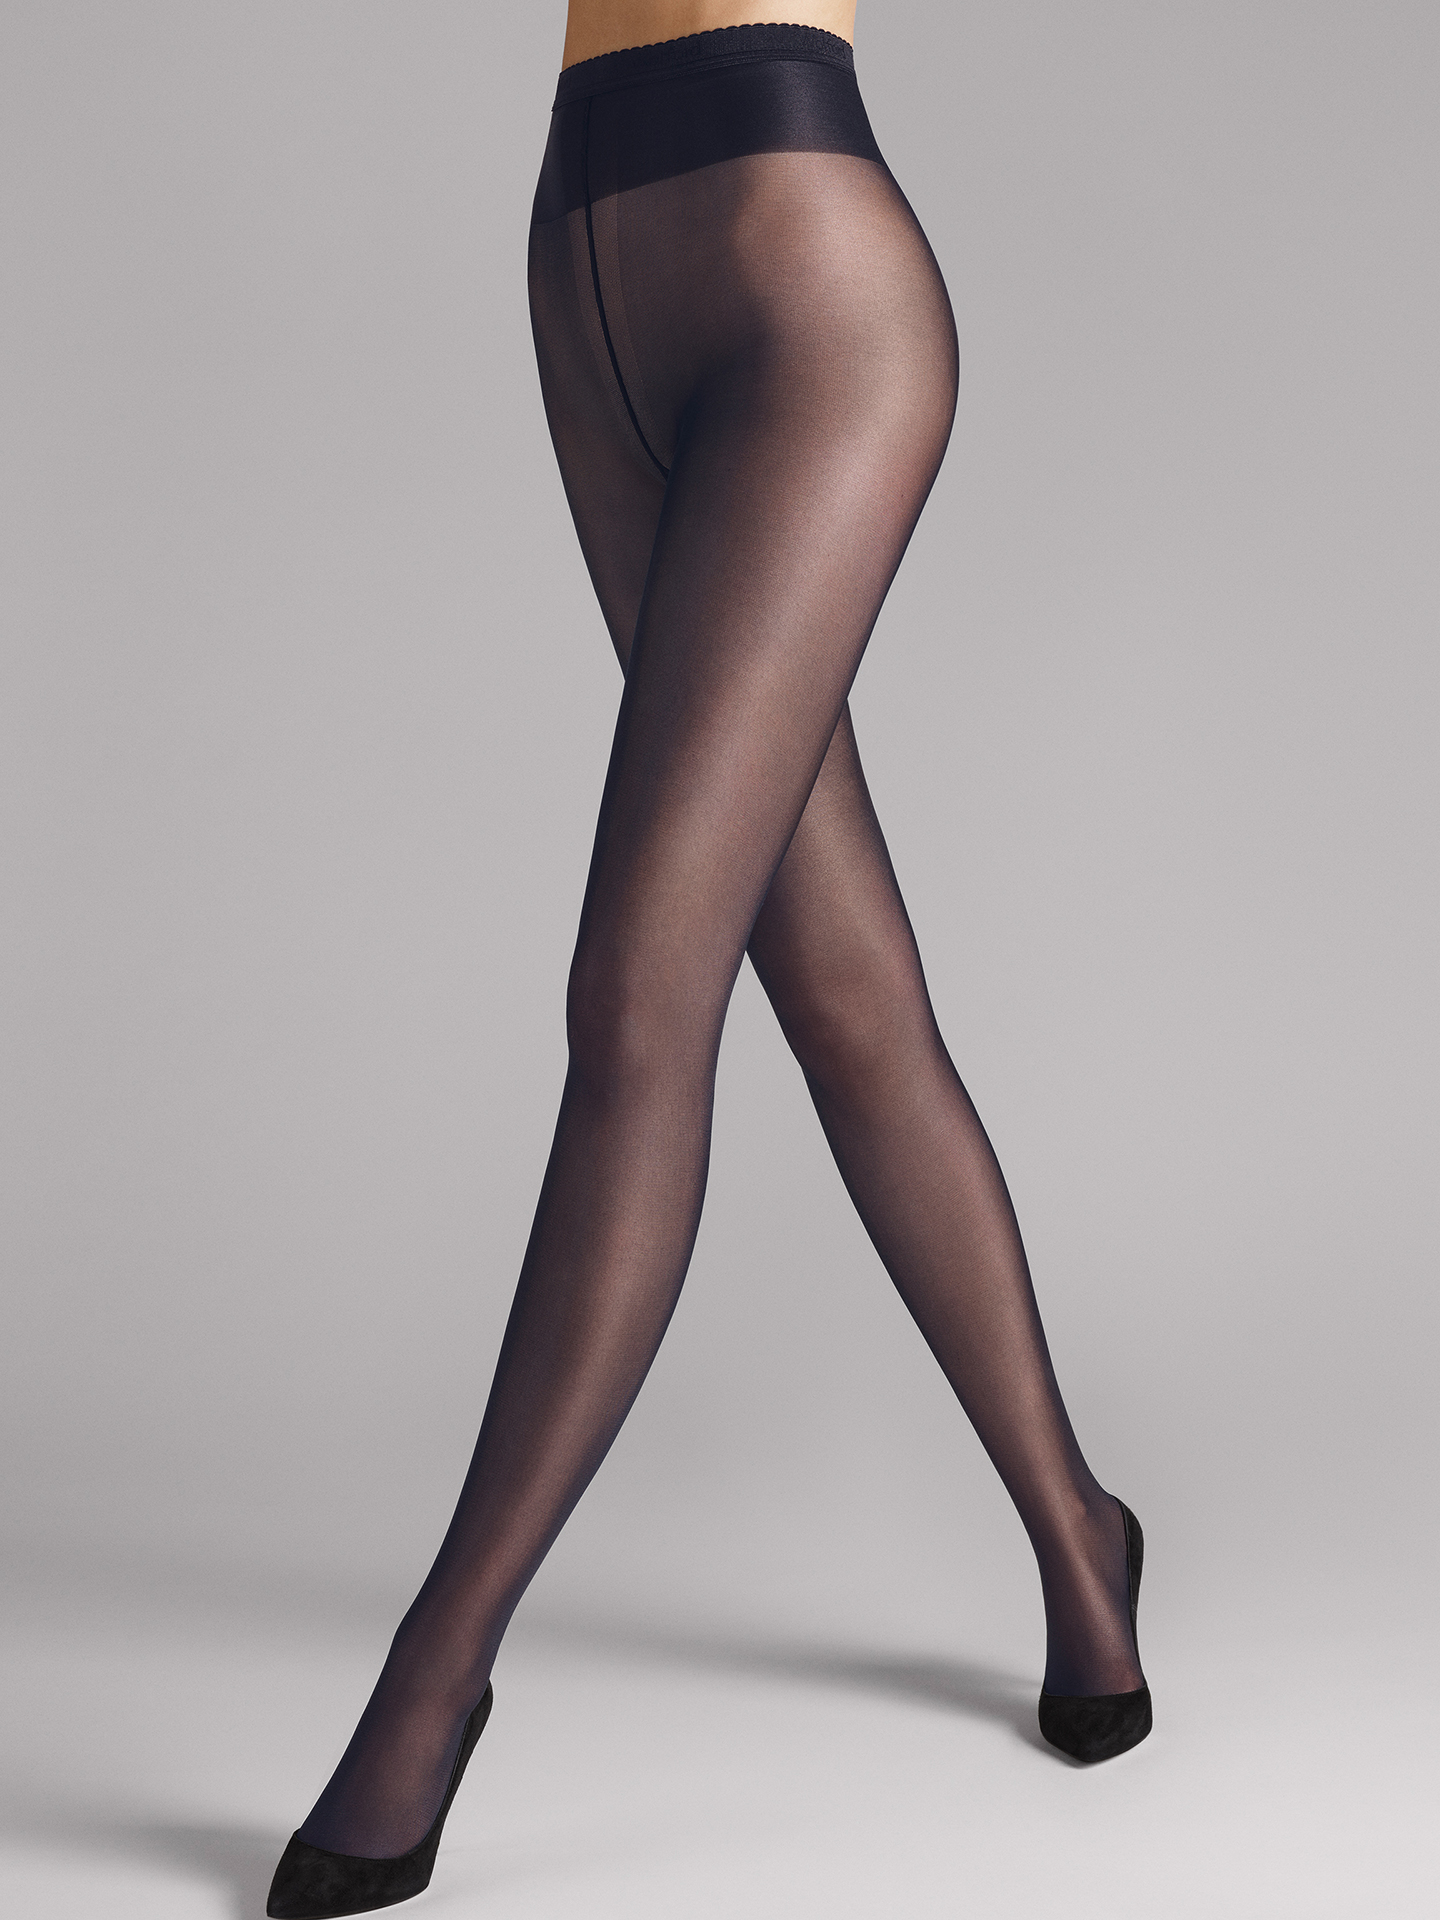 Wolford Apparel & Accessories > Clothing > Collant Neon 40 - 5650 - XS